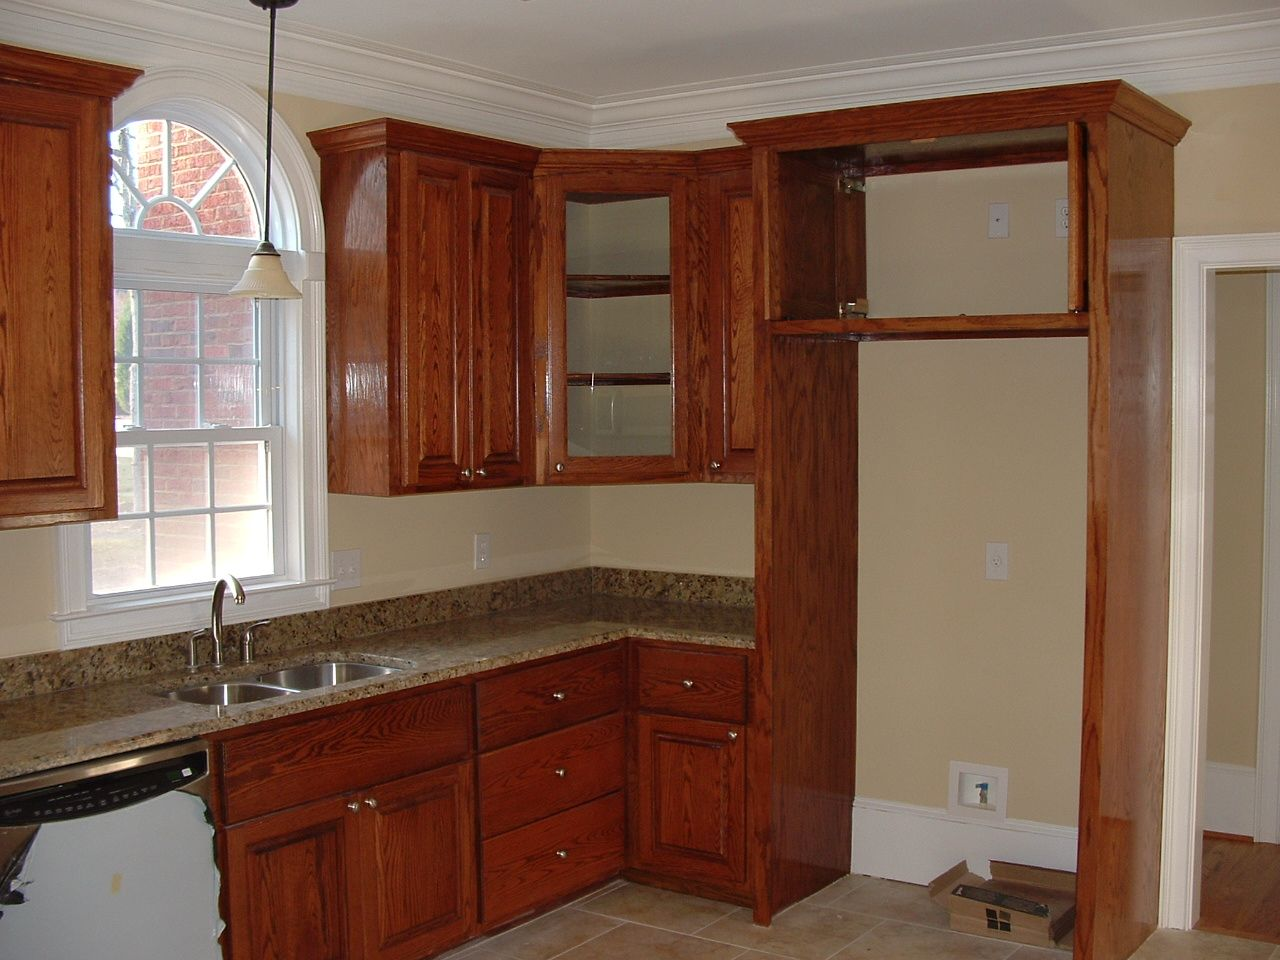 Kitchen Cabinet Storage Ideas  Corner Kitchen Cabinet Storage Alluring Kitchen Design Gallery Ideas Review